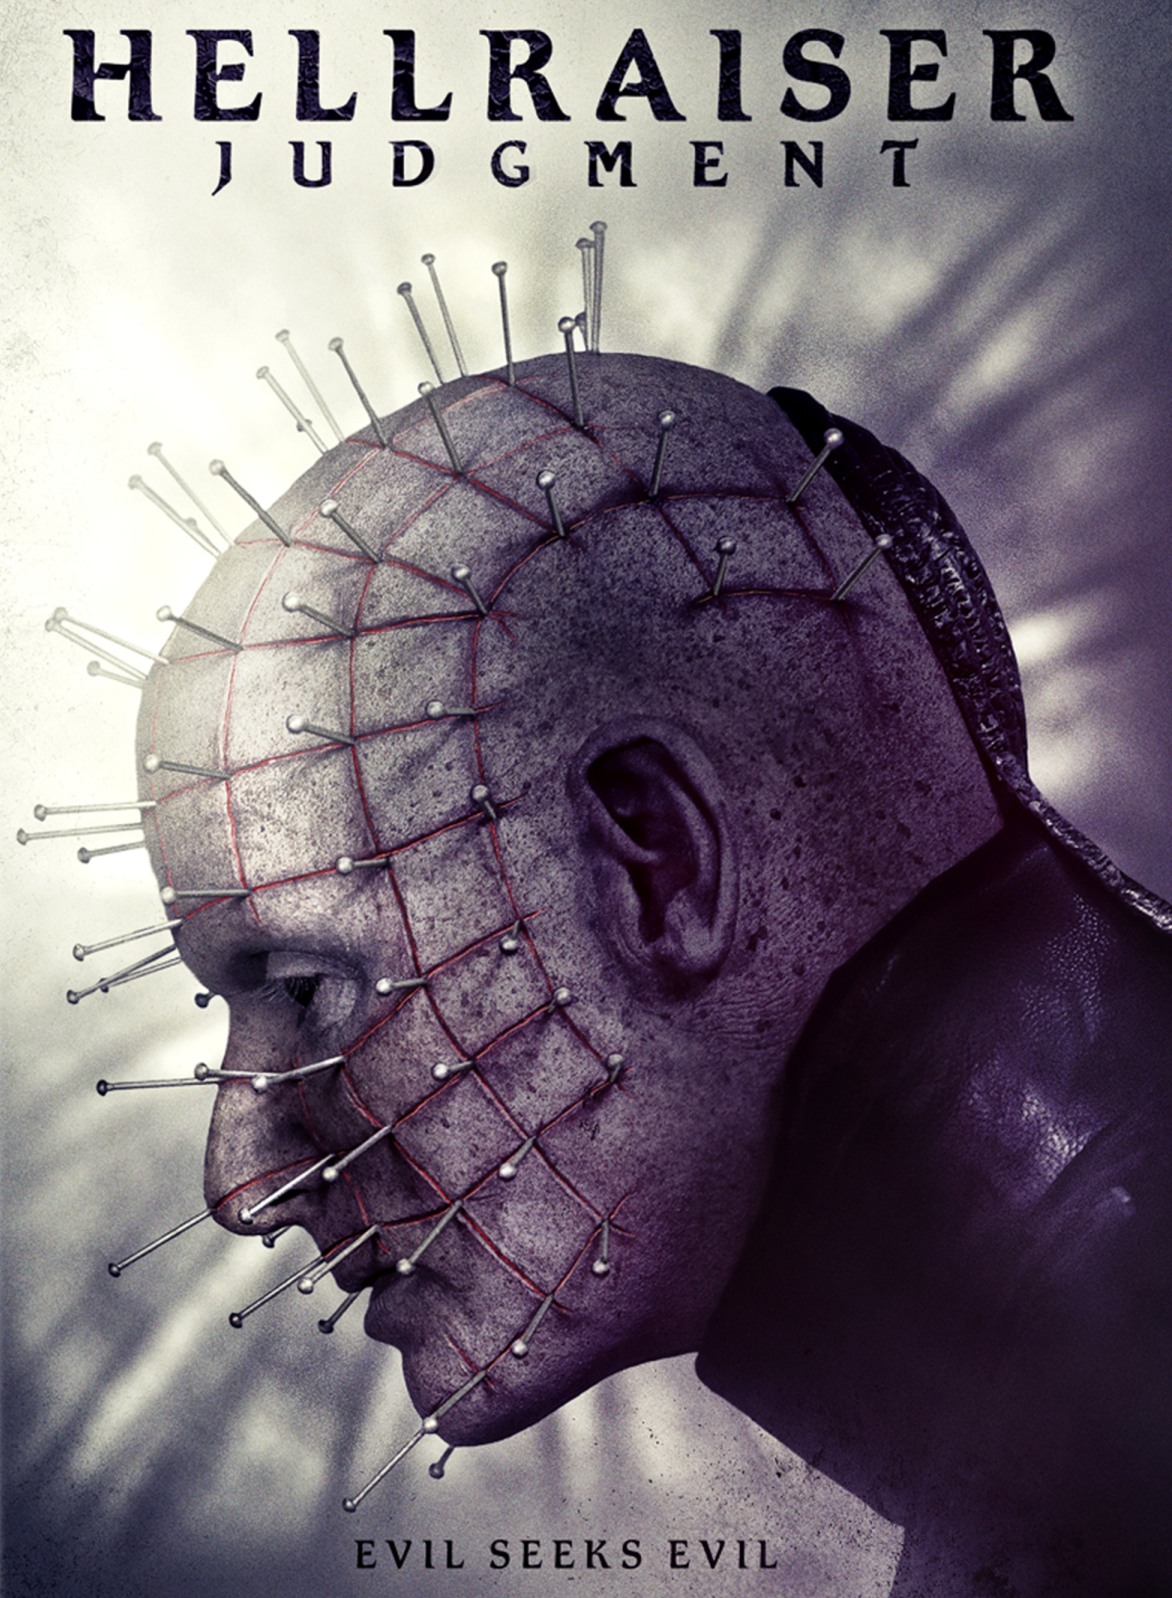 hellraiser_judgment_dvd_3d.png